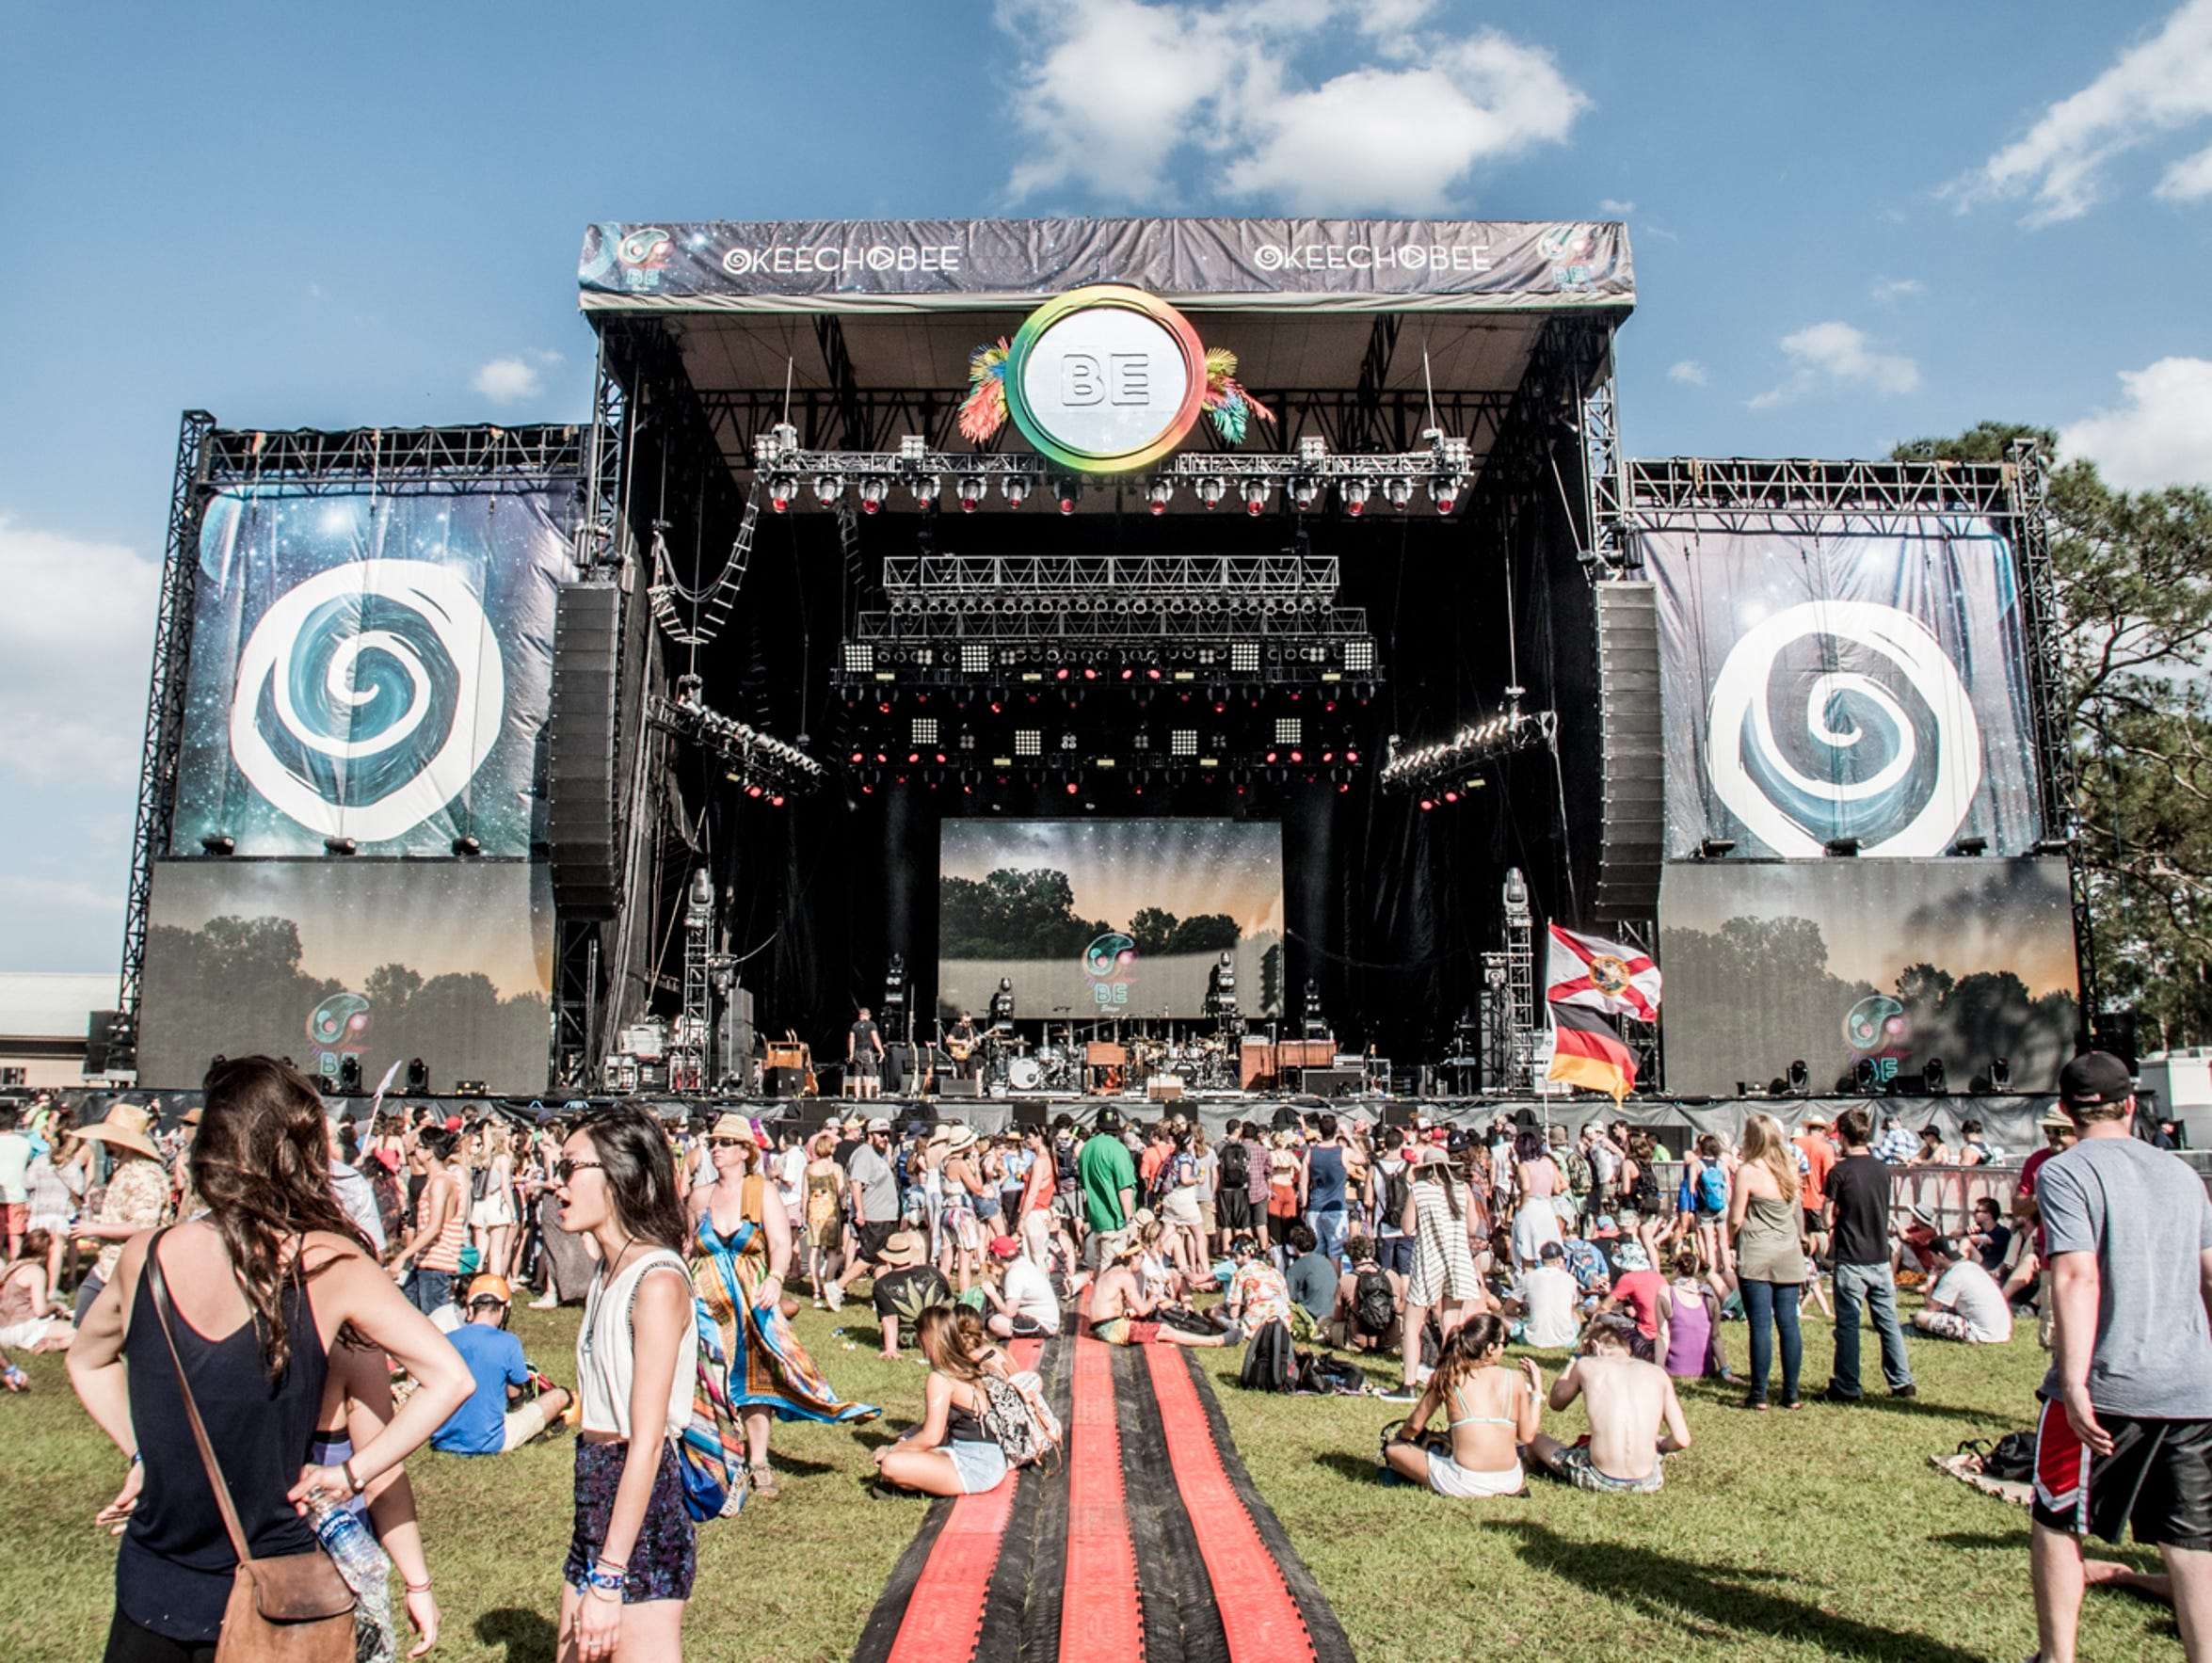 Okeechobee Music and Arts Festival served as Florida's